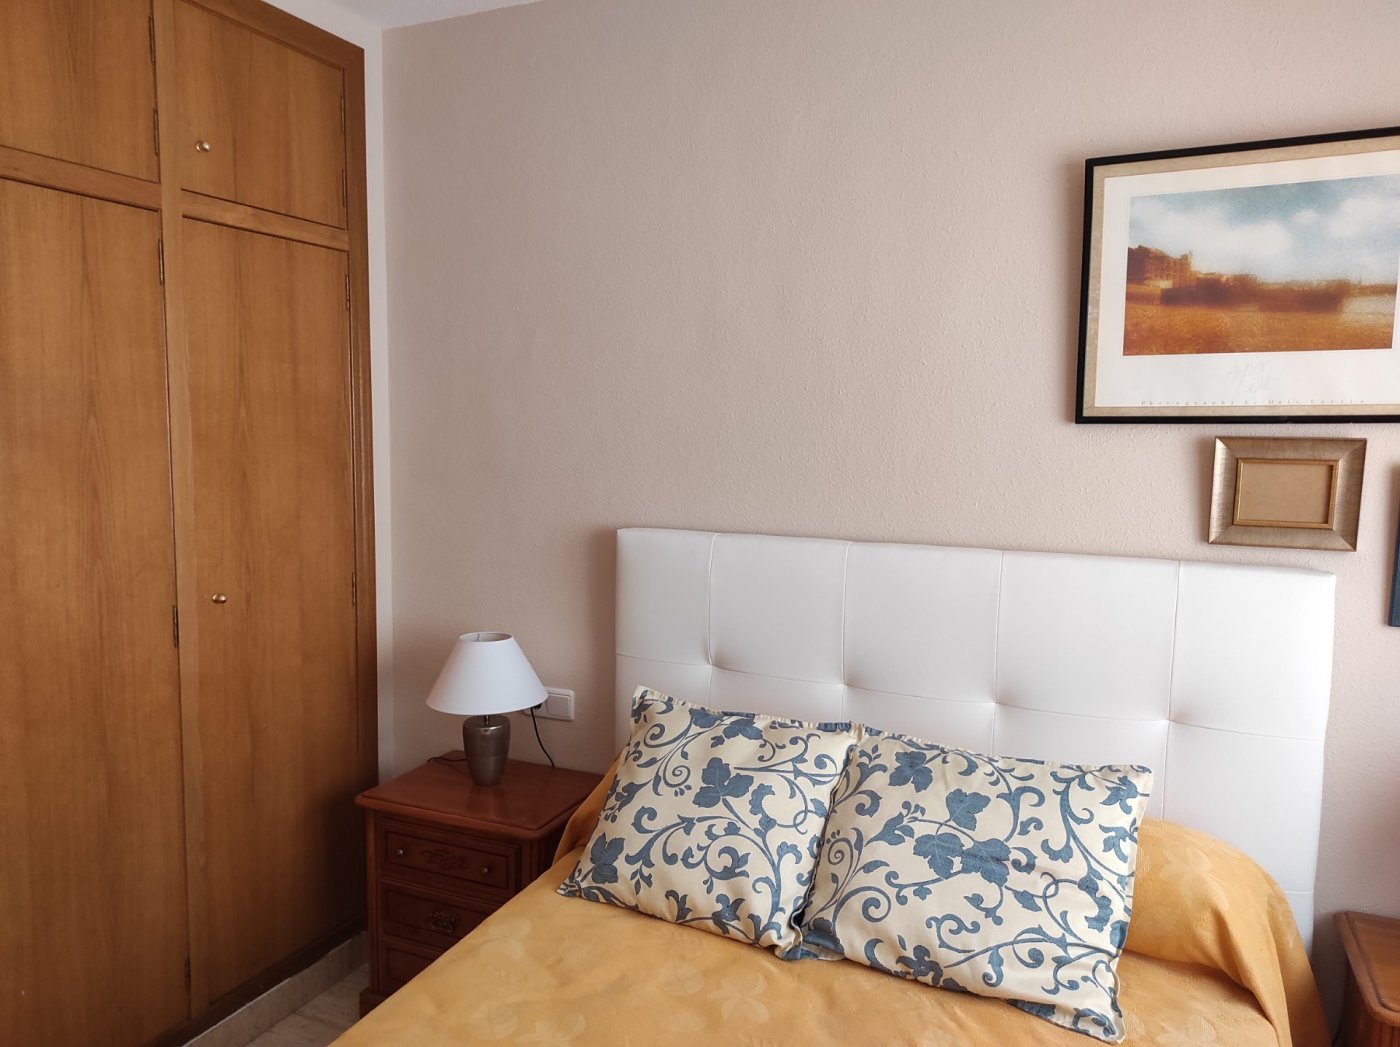 Gallery Image 7 of Flat For rent in Barrio Del Carmen, Murcia